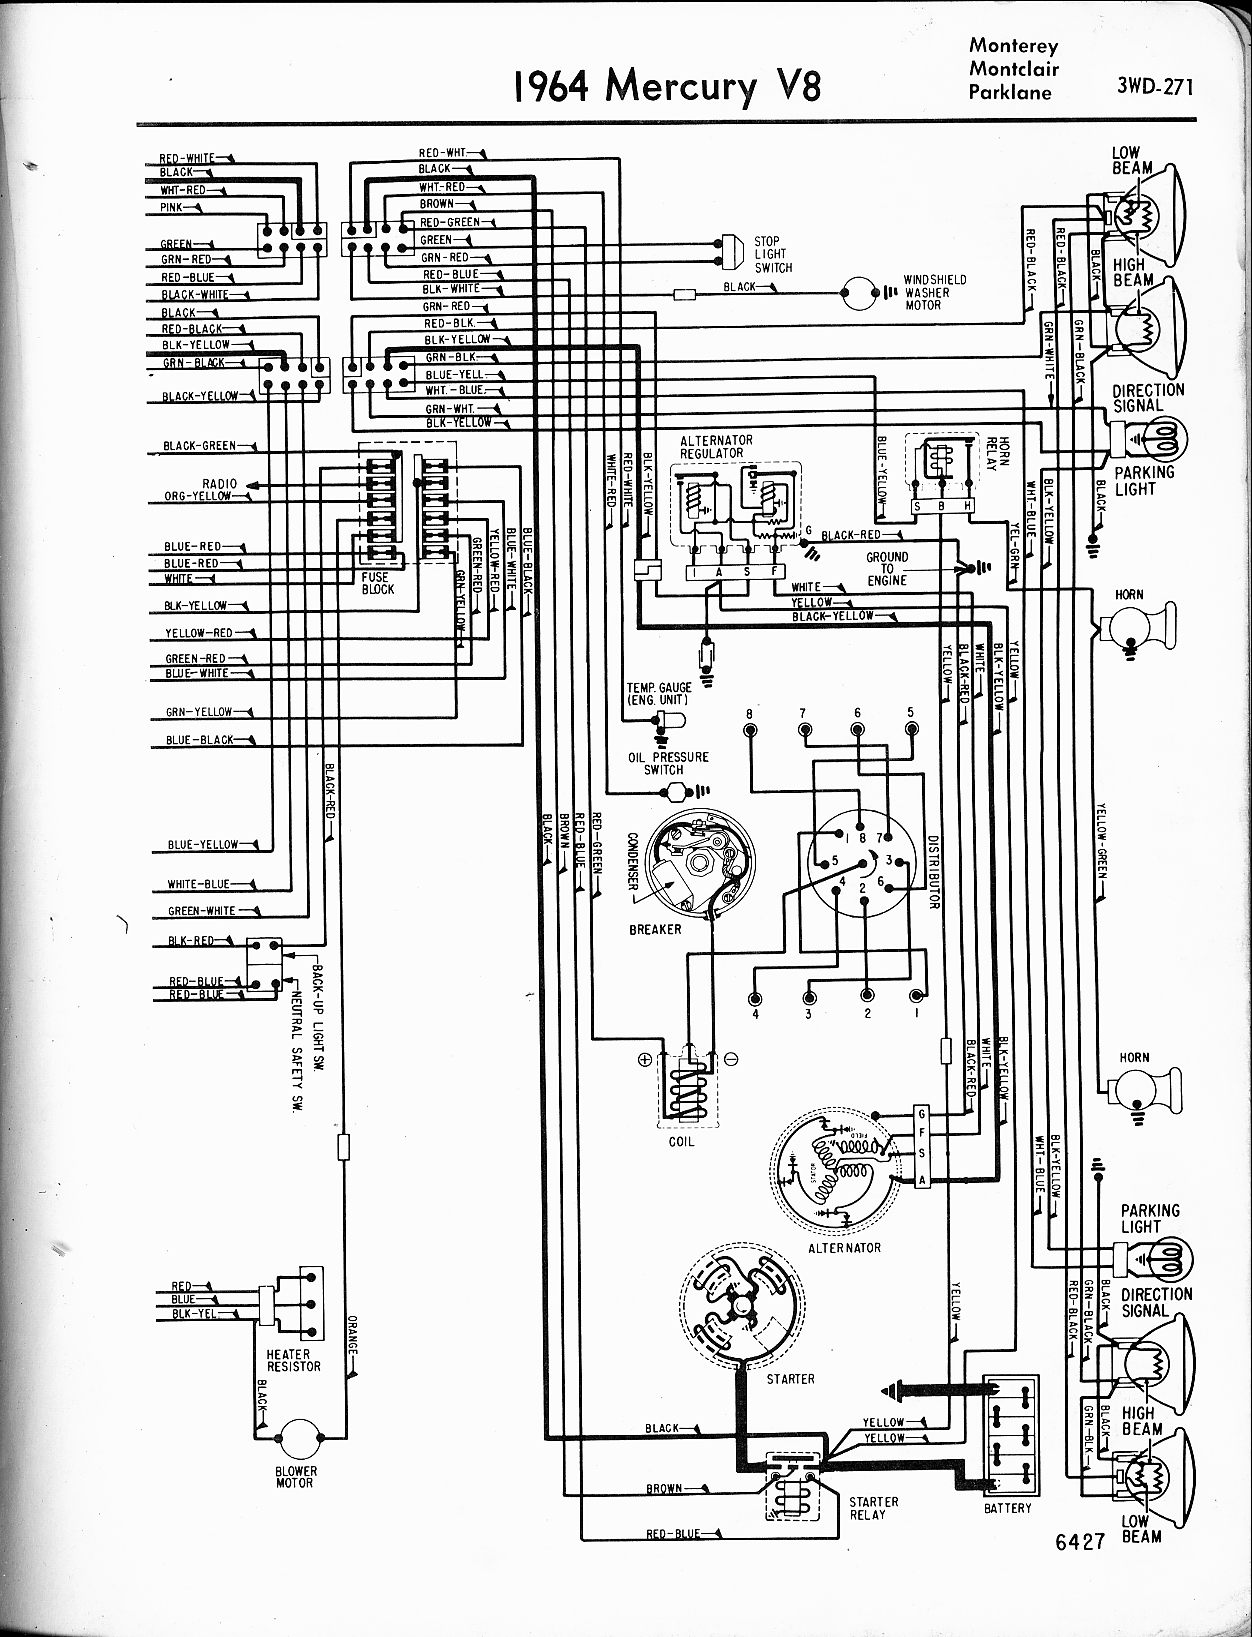 Alternator Wiring Diagram 1957 Great Installation Of 1979 Ford F100 460 Engine 1965 Mercury Diagrams Schema Rh 37 Verena Hoegerl De